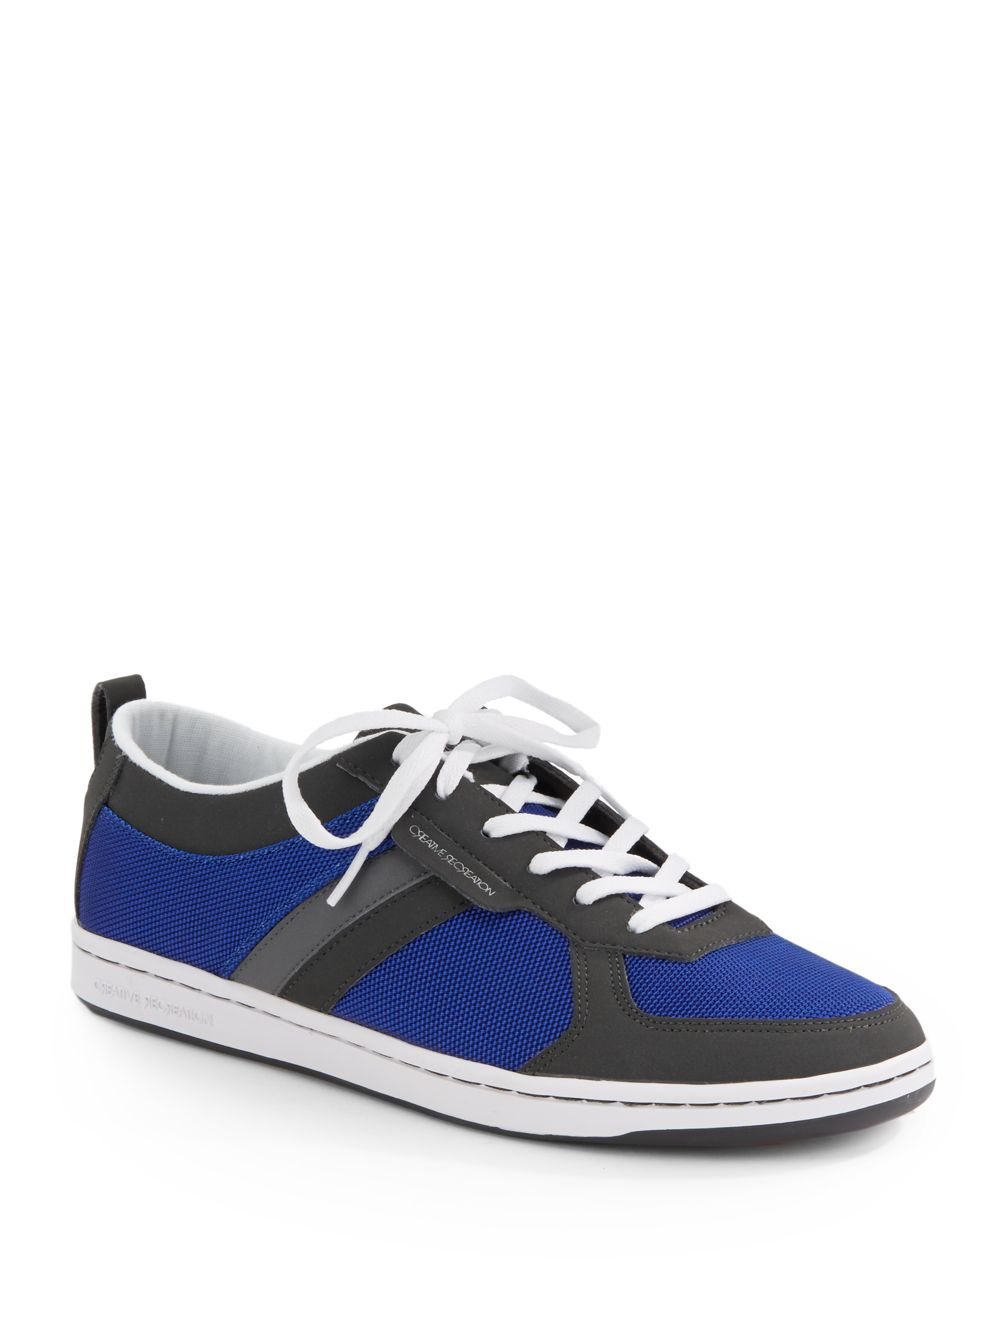 Creative Recreation Dicoco Low-Rise Sneakers in Blue for ...